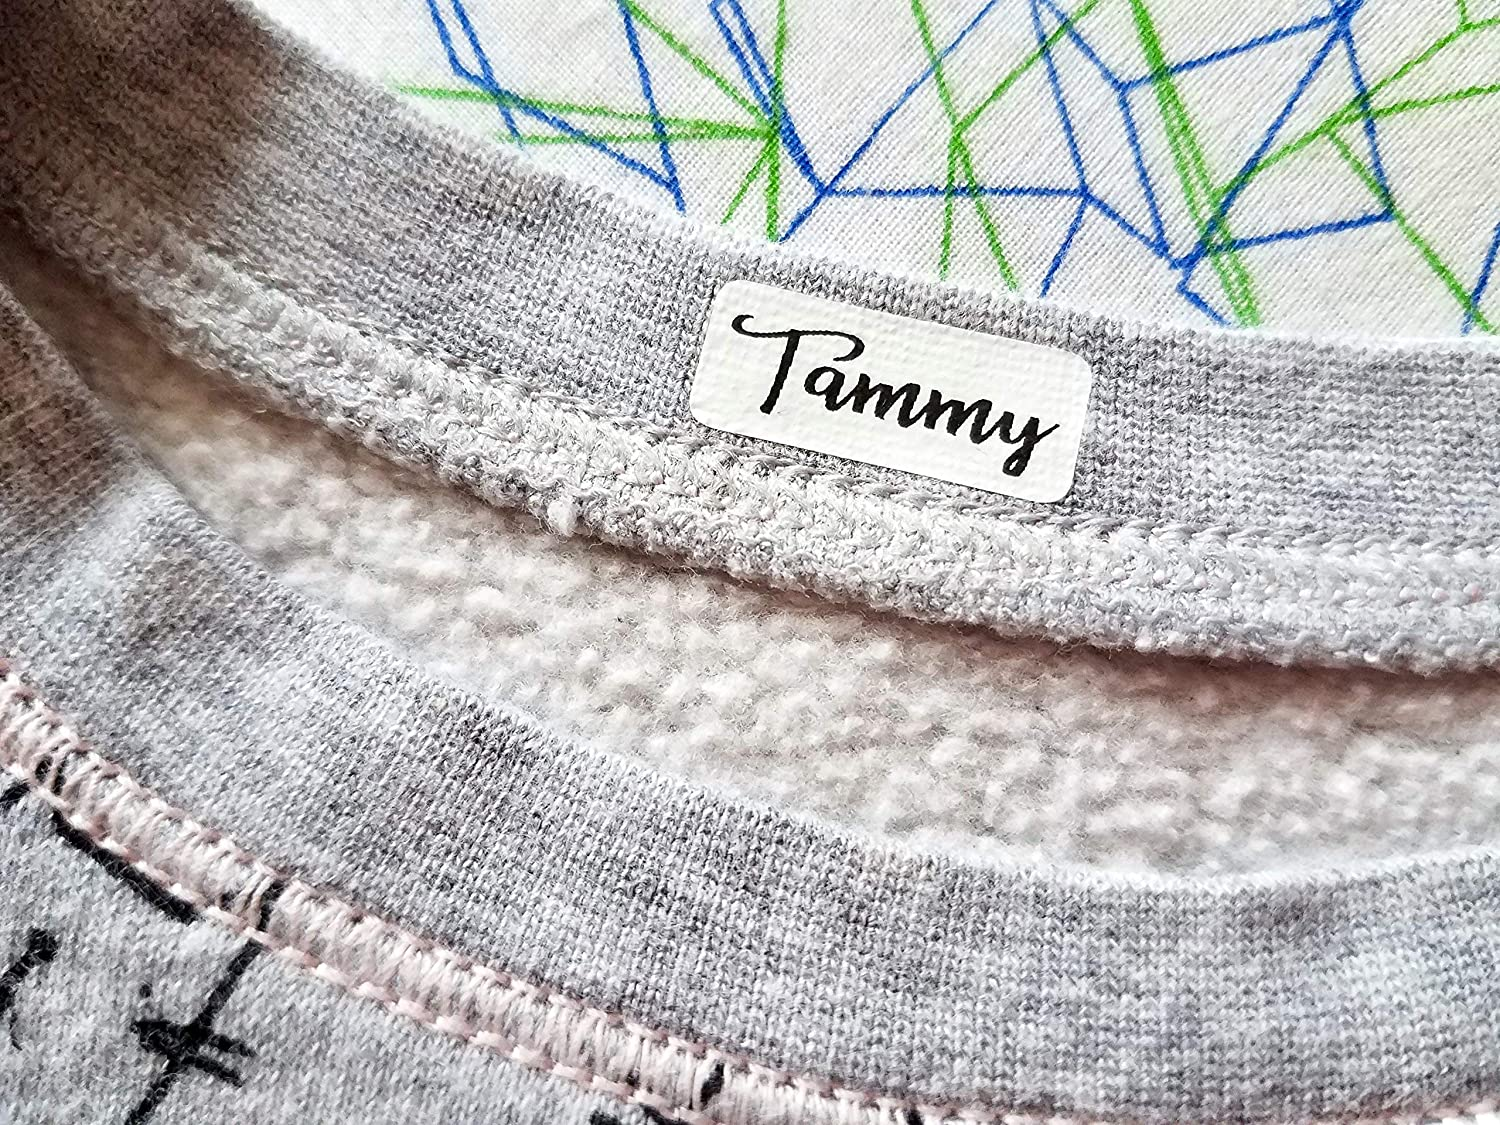 Amazon.com: 48 Small Size White Fabric Labels Clothing Label - Iron On  Labels - Sew on Sewing label - Cloth Label: Handmade